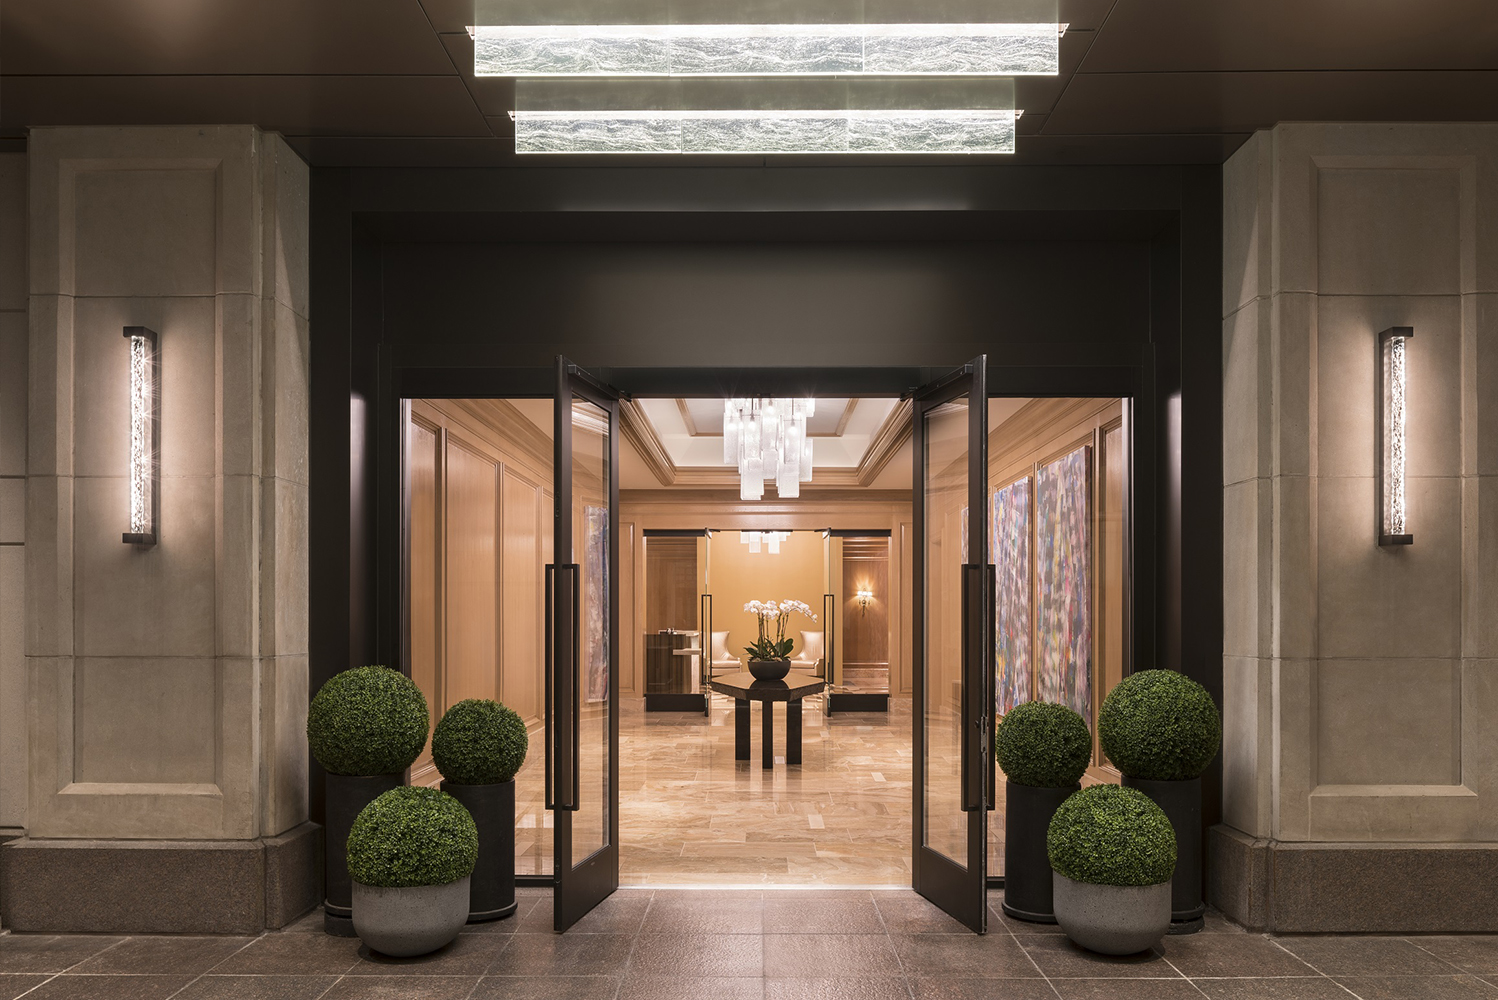 The Ritz-Carlton, Cleveland in Ohio completed an 18-month transformation of its 206 luxury guestrooms and public spaces.